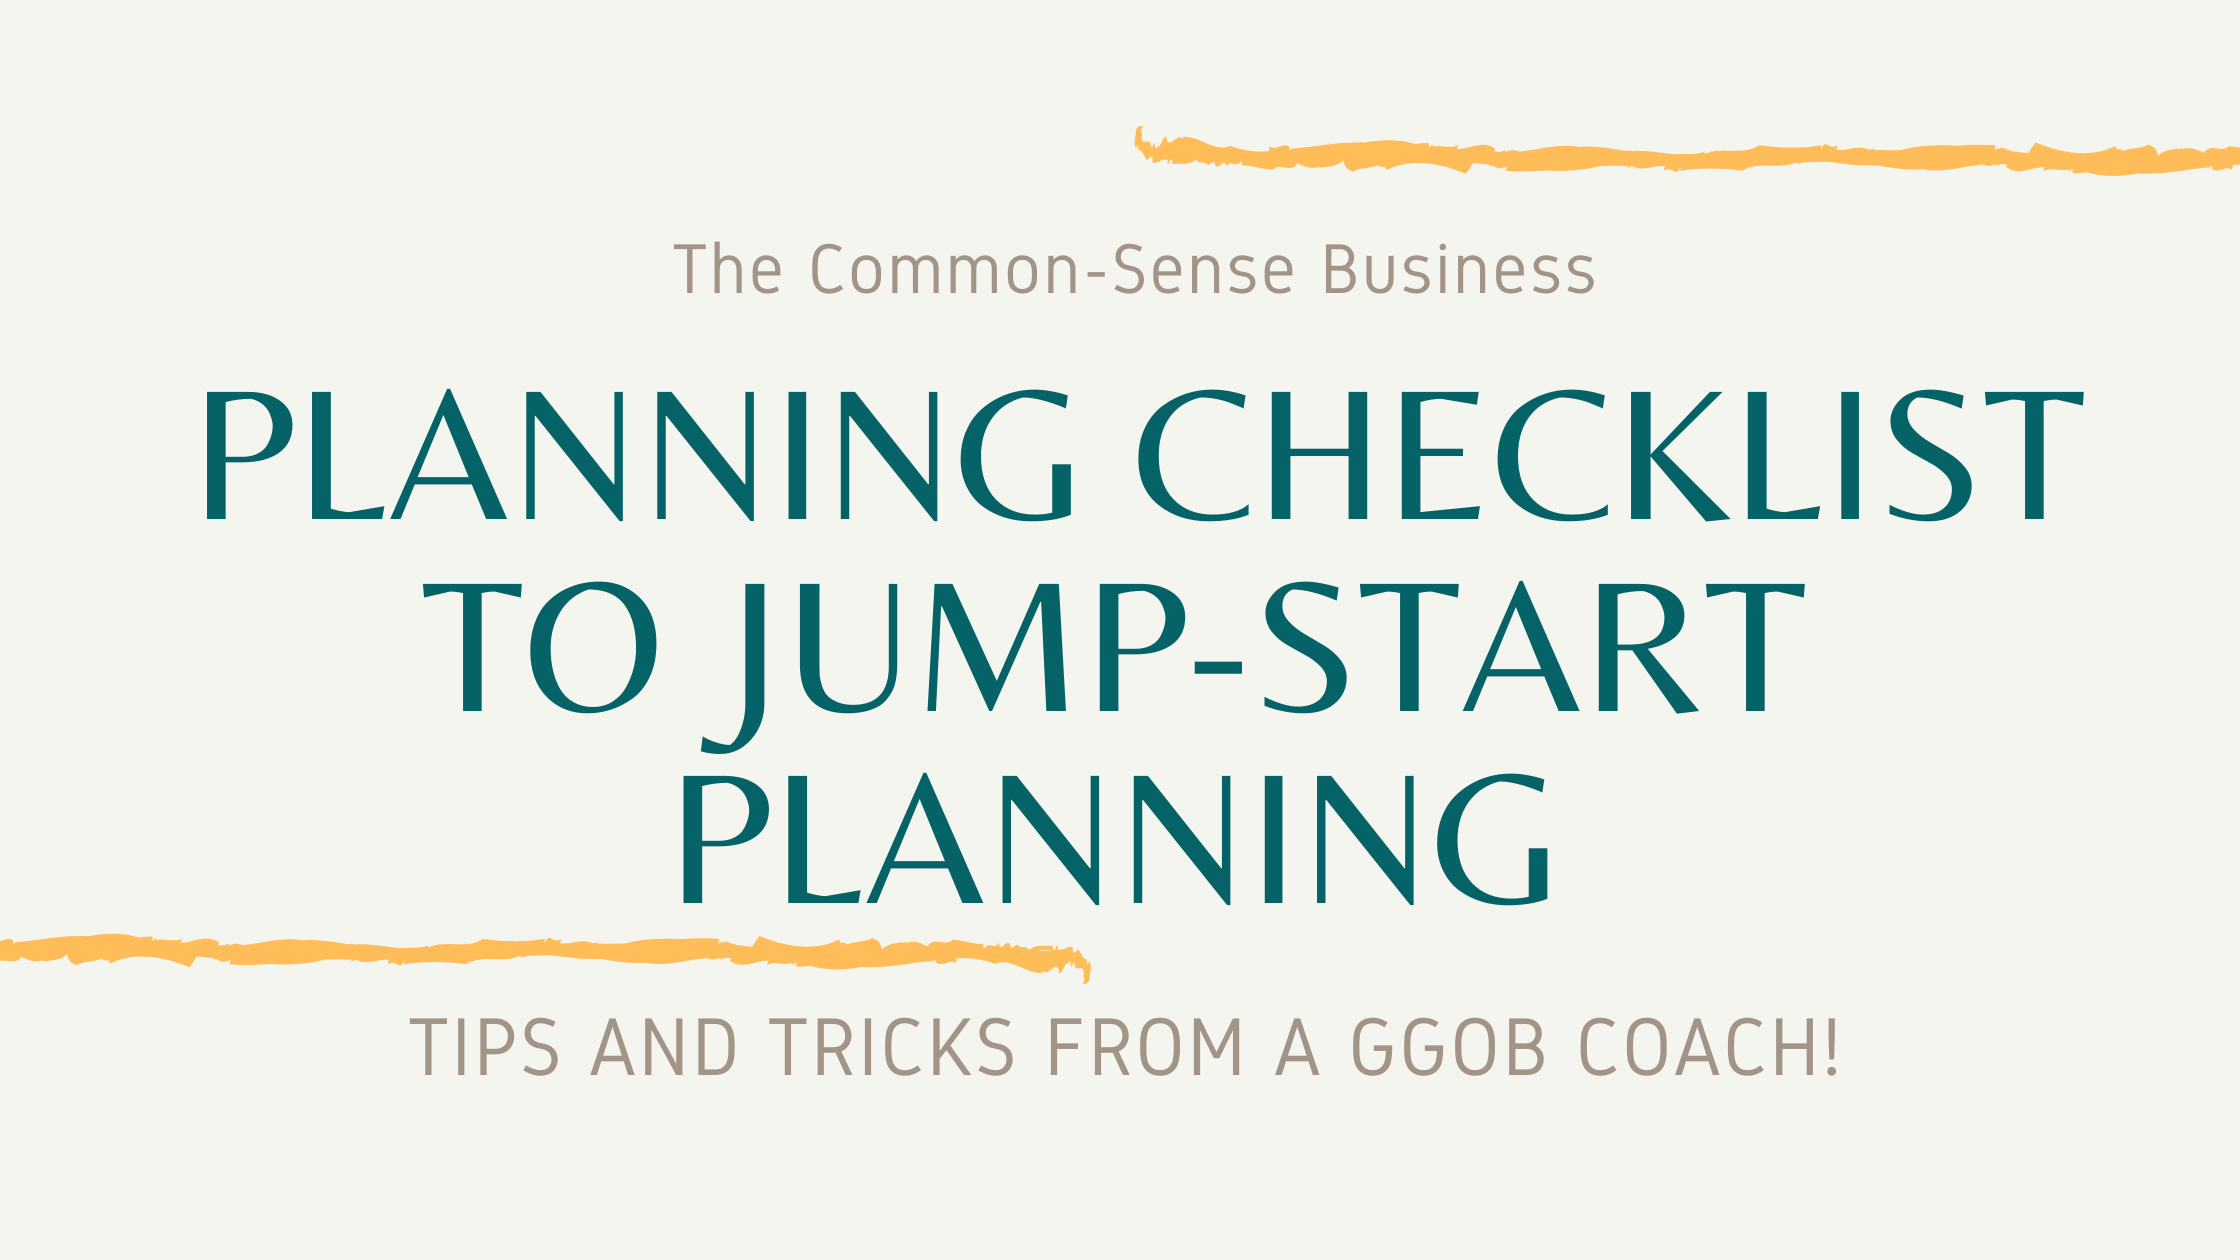 The Common-Sense Business Planning Checklist to Jump-Start Planning